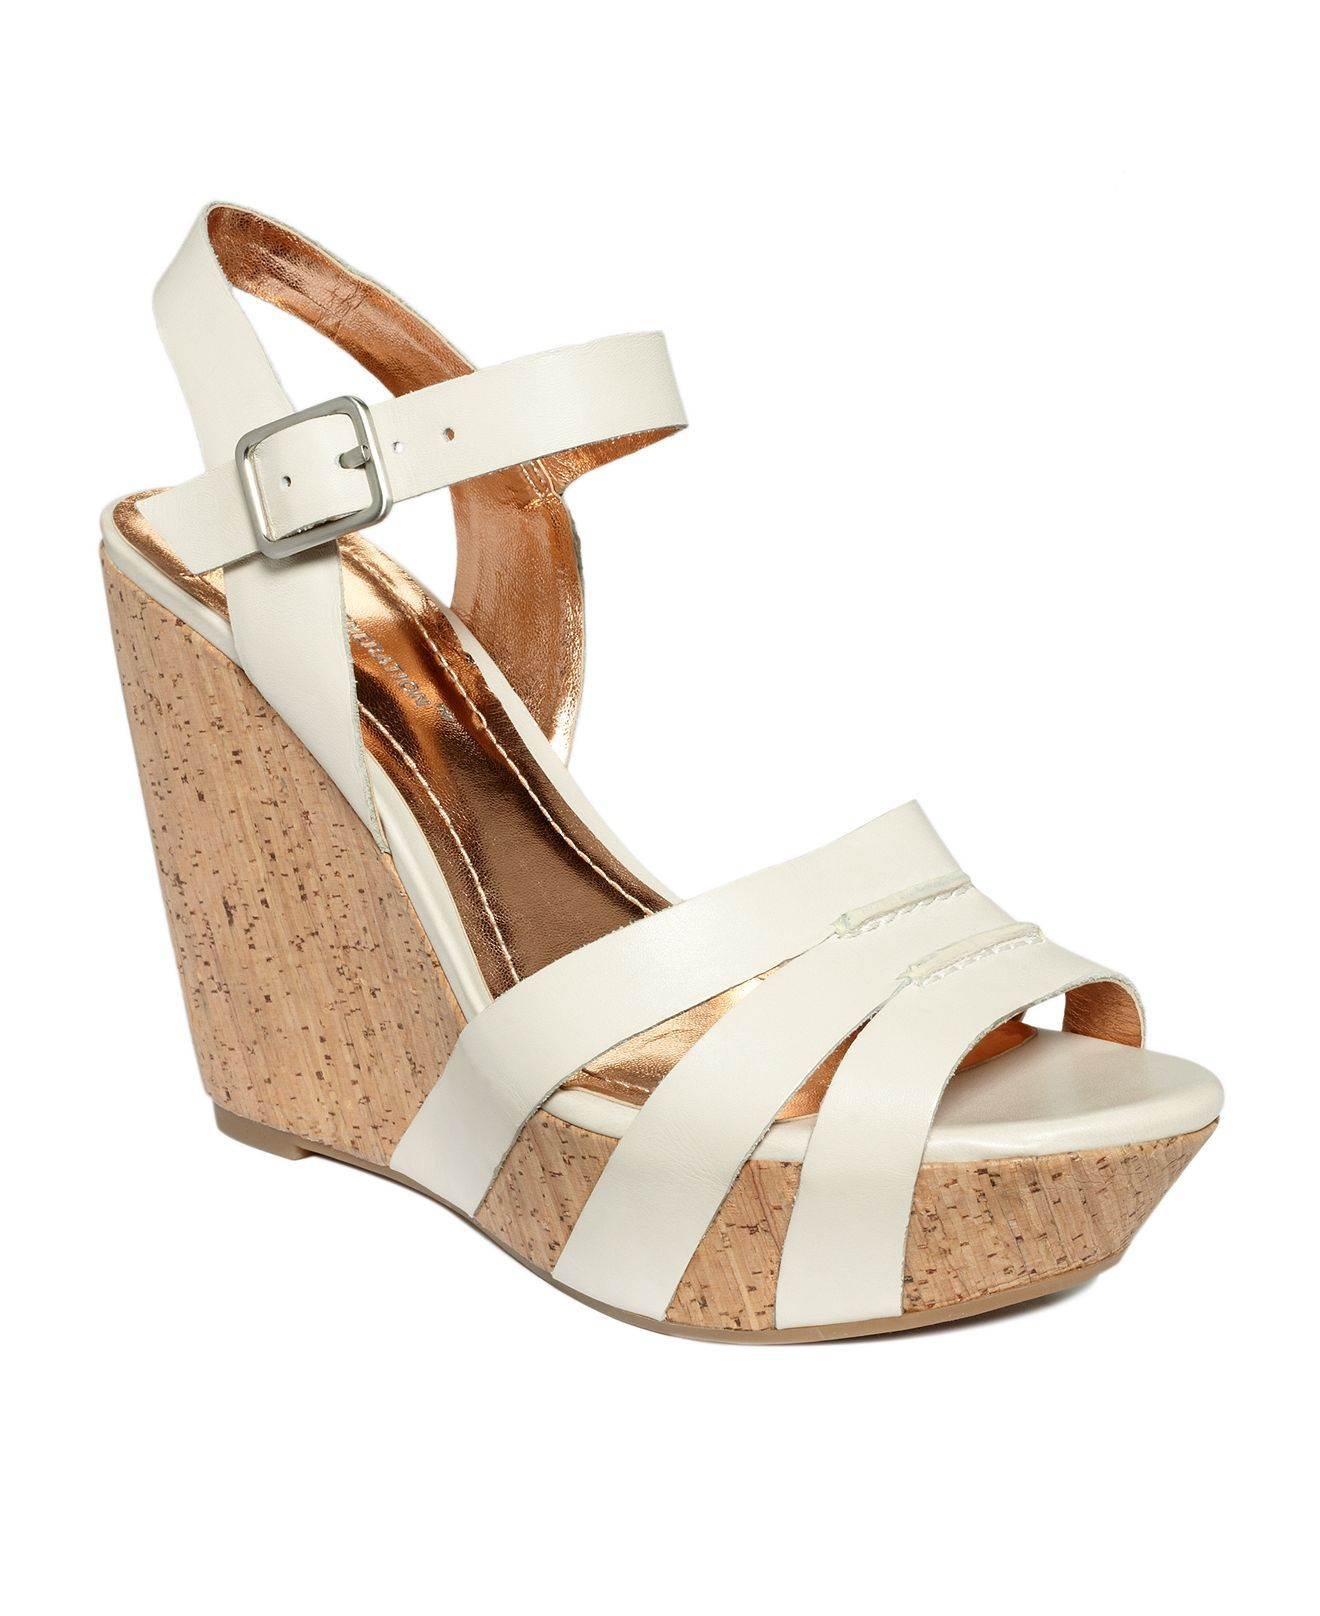 087dd94b2c90 BCBGeneration Perrin Ankle Strap Wedges - All Women s Shoes - Shoes - Macy s